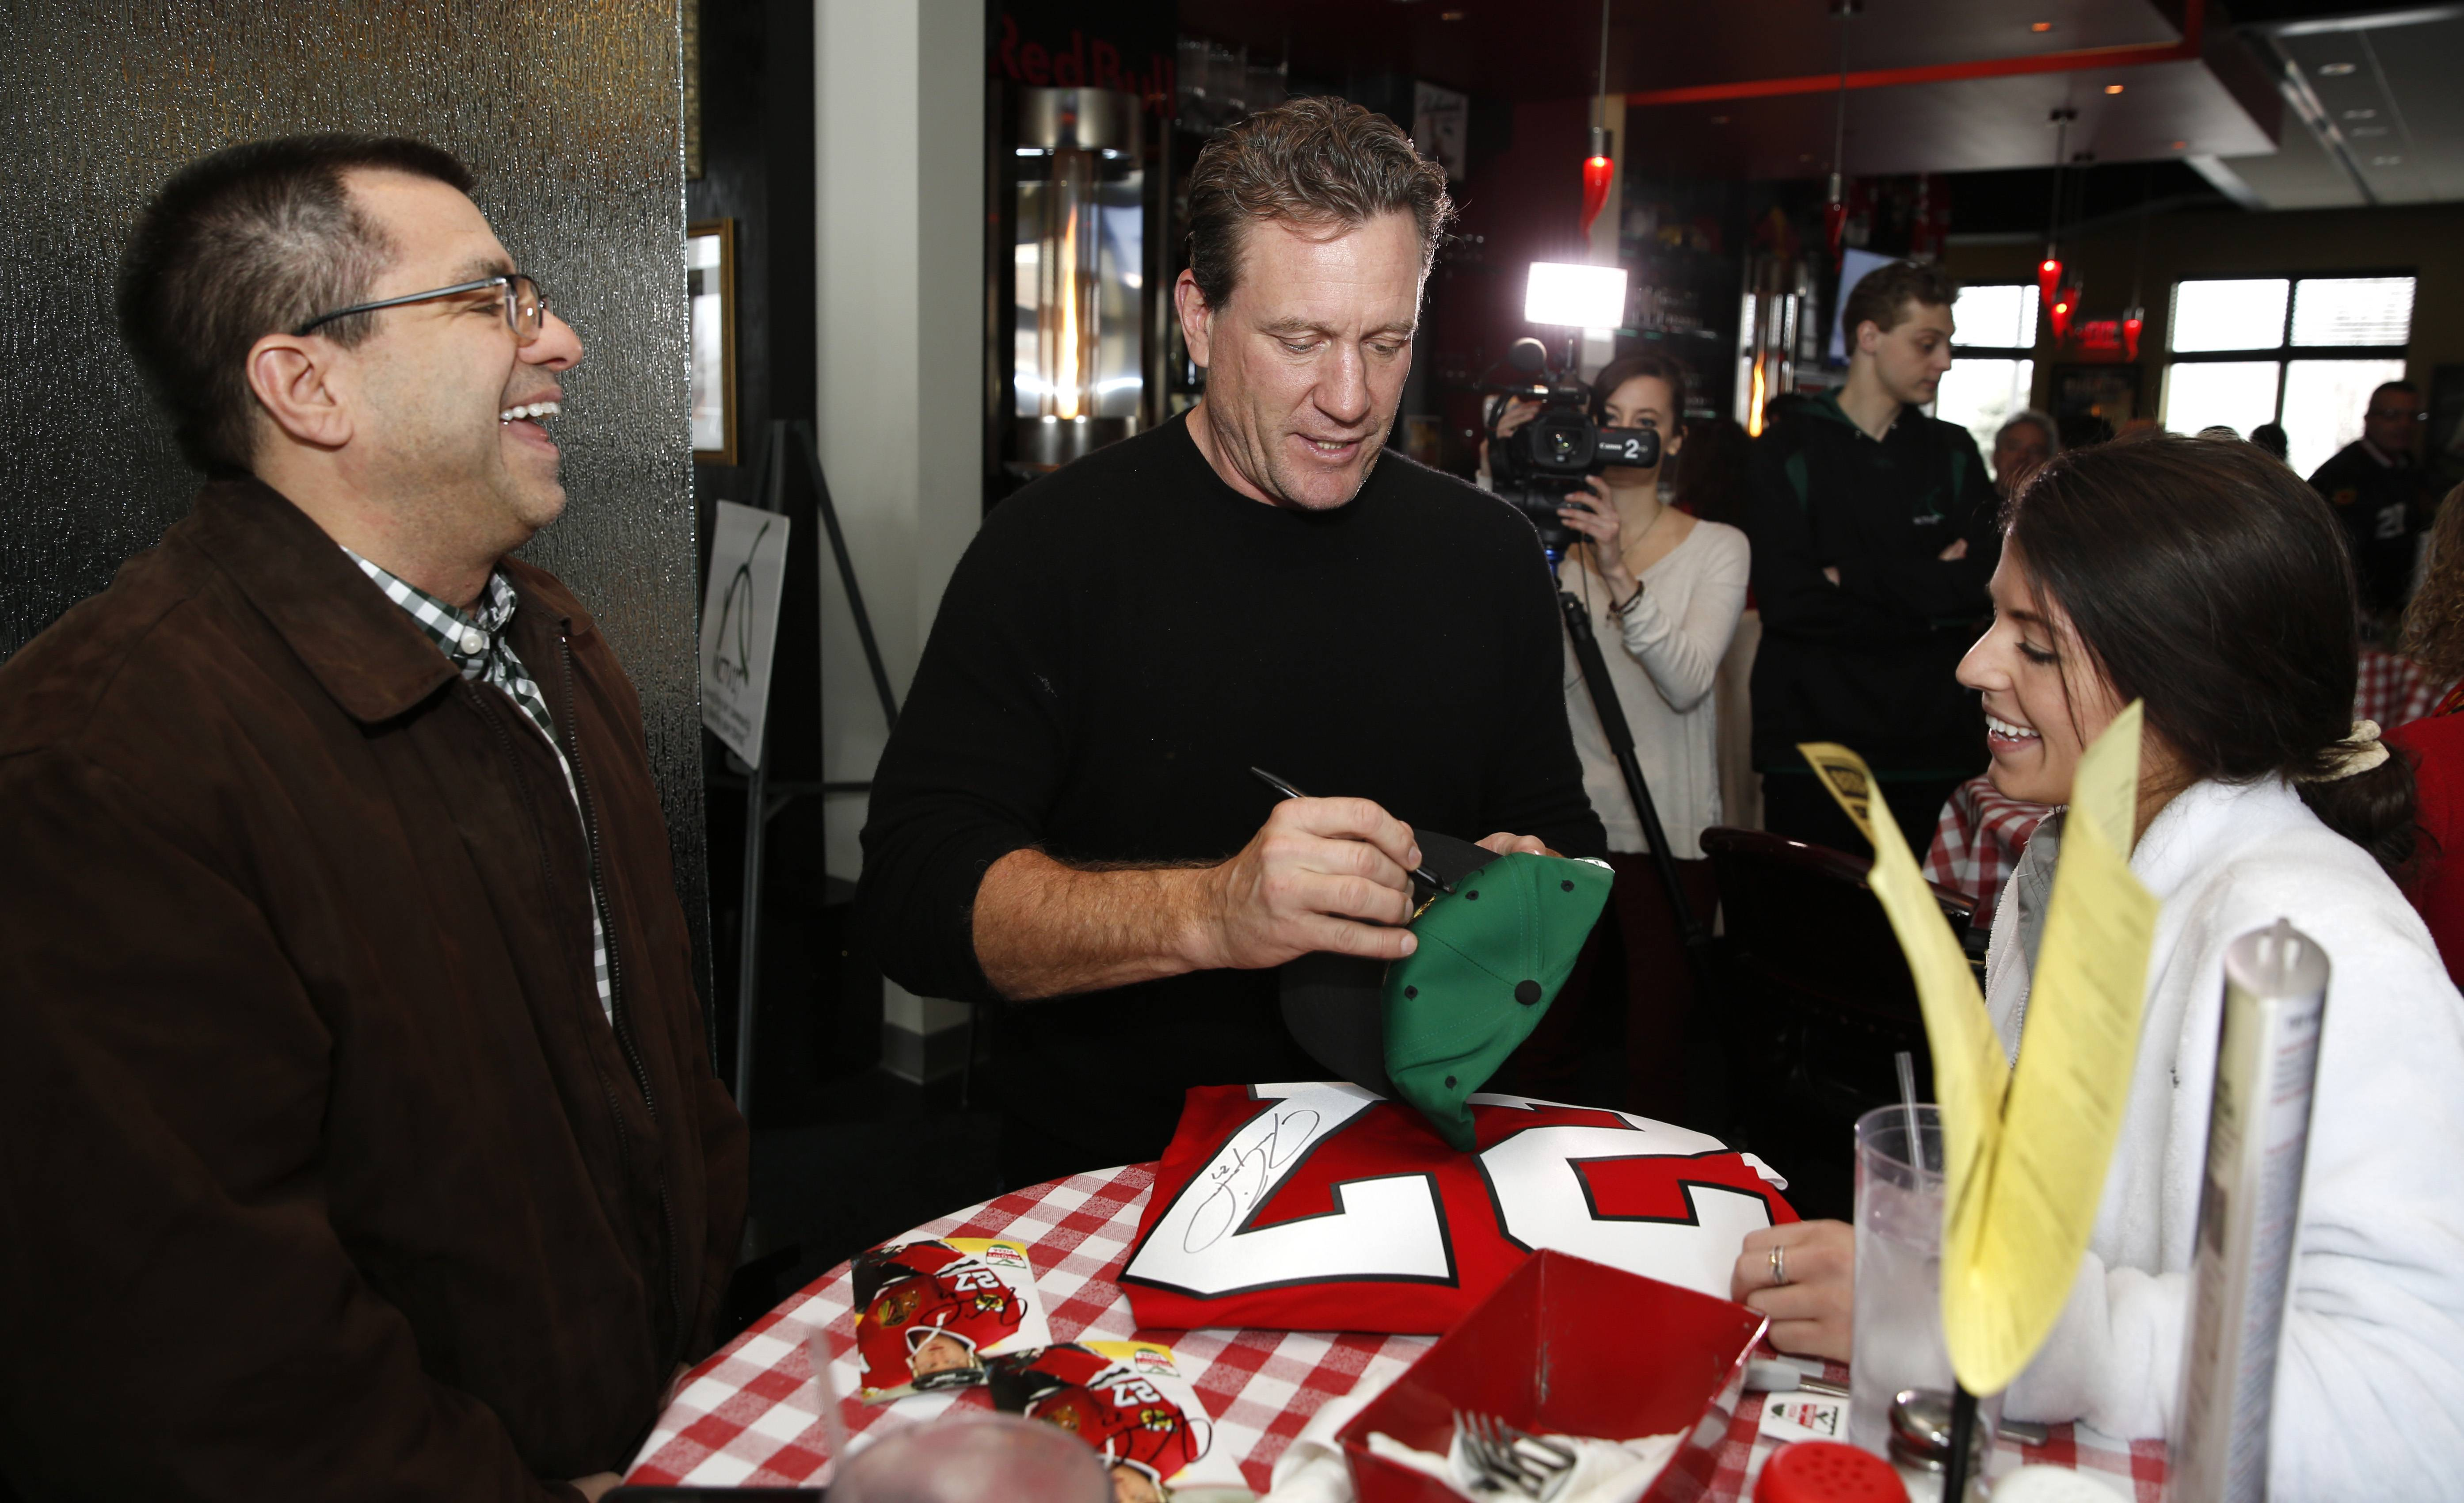 Former Chicago Blackhawks player Jeremy Roenick mingles with fans Dan and Kelsey Brosseau this week while signing autographs at Aurelio's Pizza in Naperville. Roenick also appeared as a celebrity bartender at Aurelio's in Geneva.